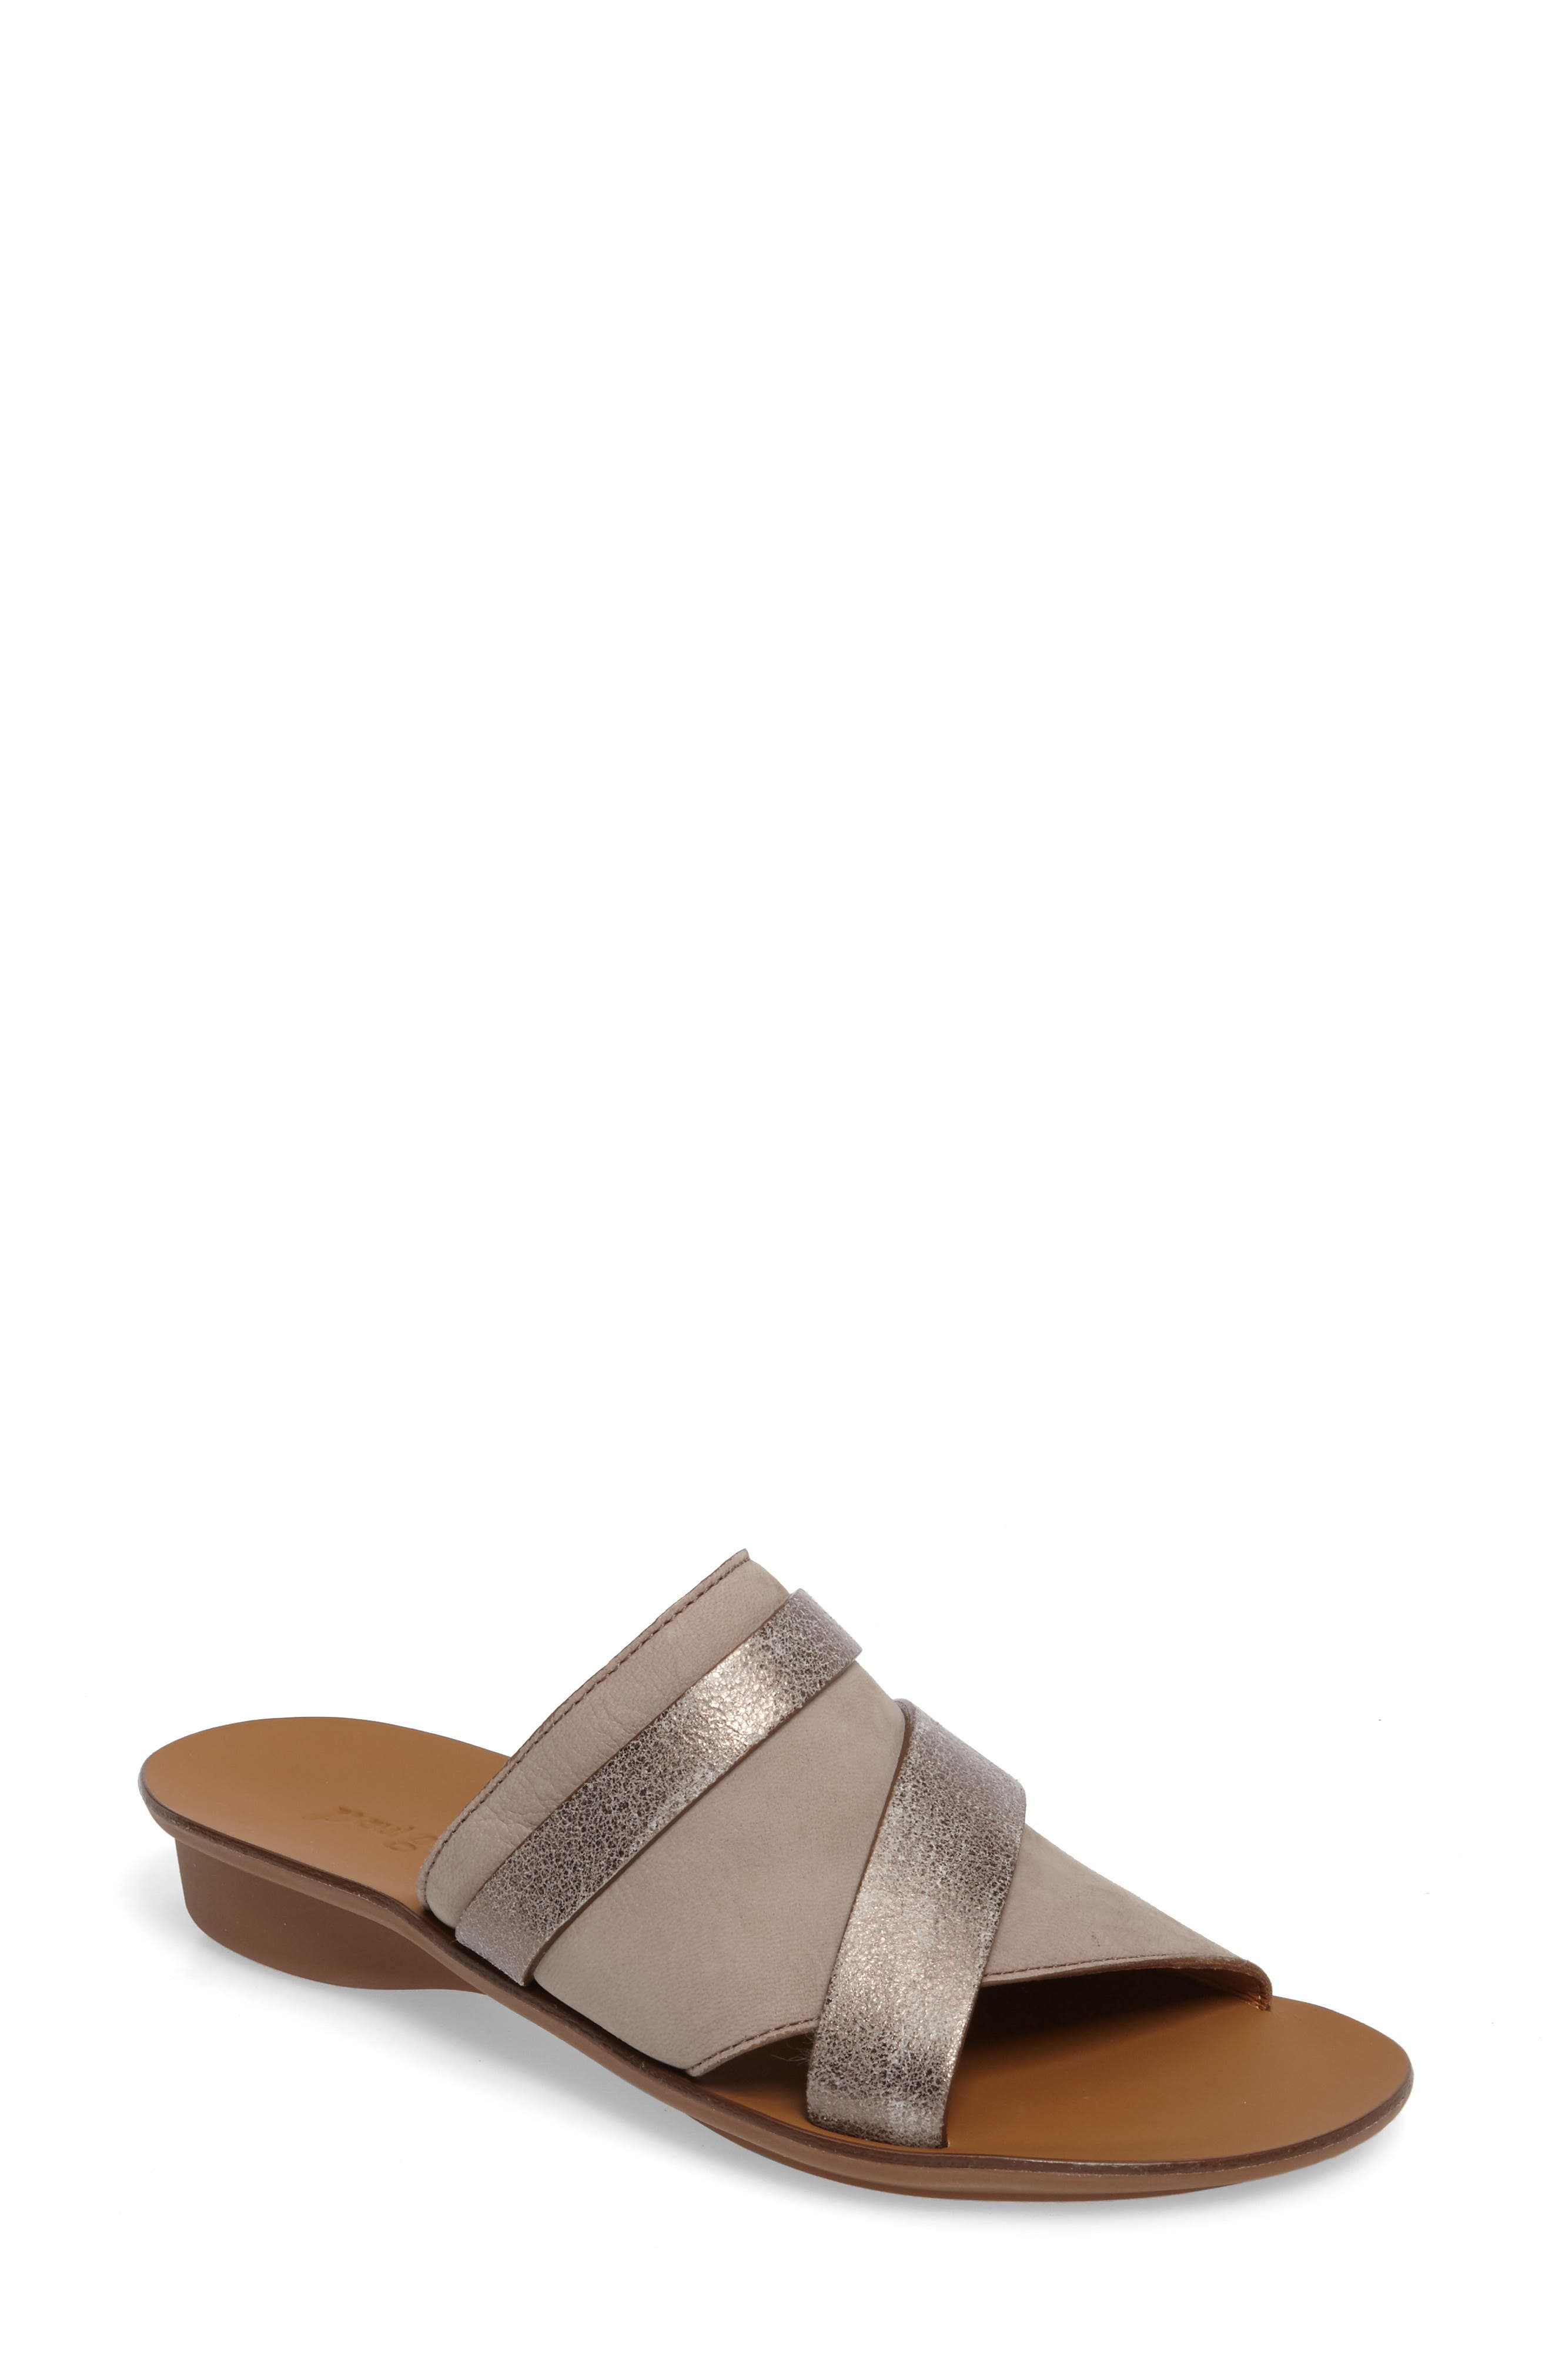 Paul Green 'Bayside' Leather Sandal (Women)